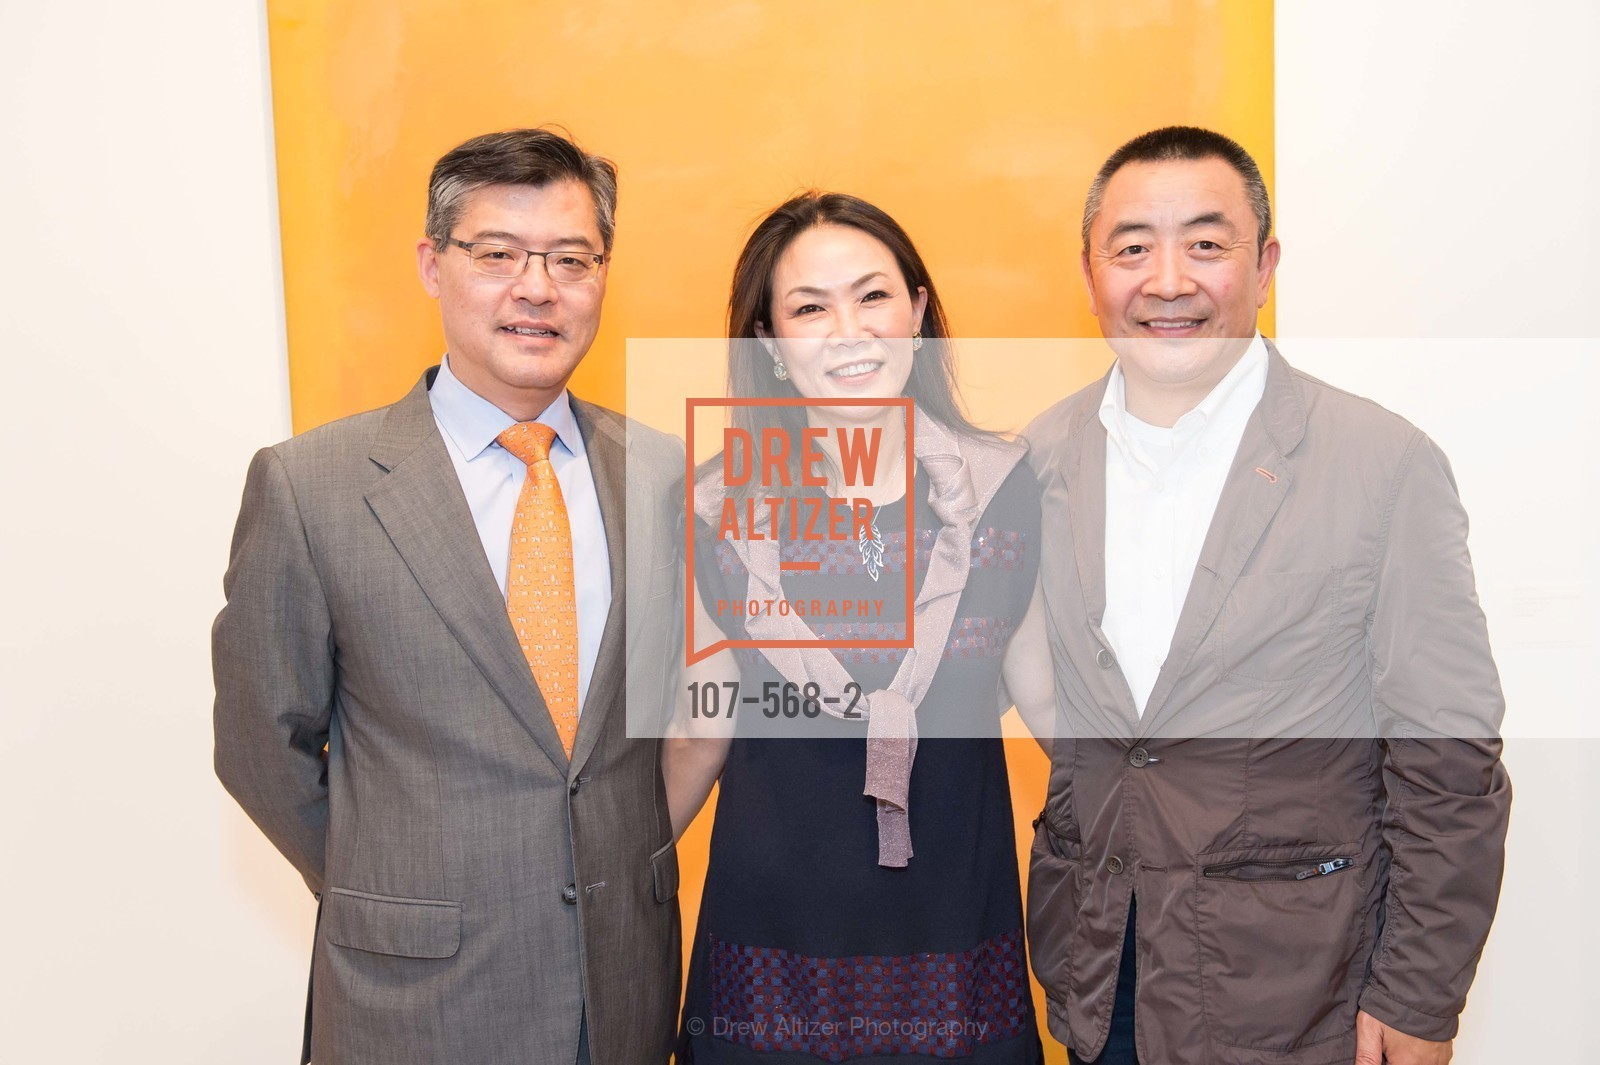 Jay Xu, Xiajun Lee, Julling Lee, SOTHEBY'S  Hosts a Private Viewing of Highlights from the Collection of MRS. PAUL MELLON, US, September 17th, 2014,Drew Altizer, Drew Altizer Photography, full-service agency, private events, San Francisco photographer, photographer california